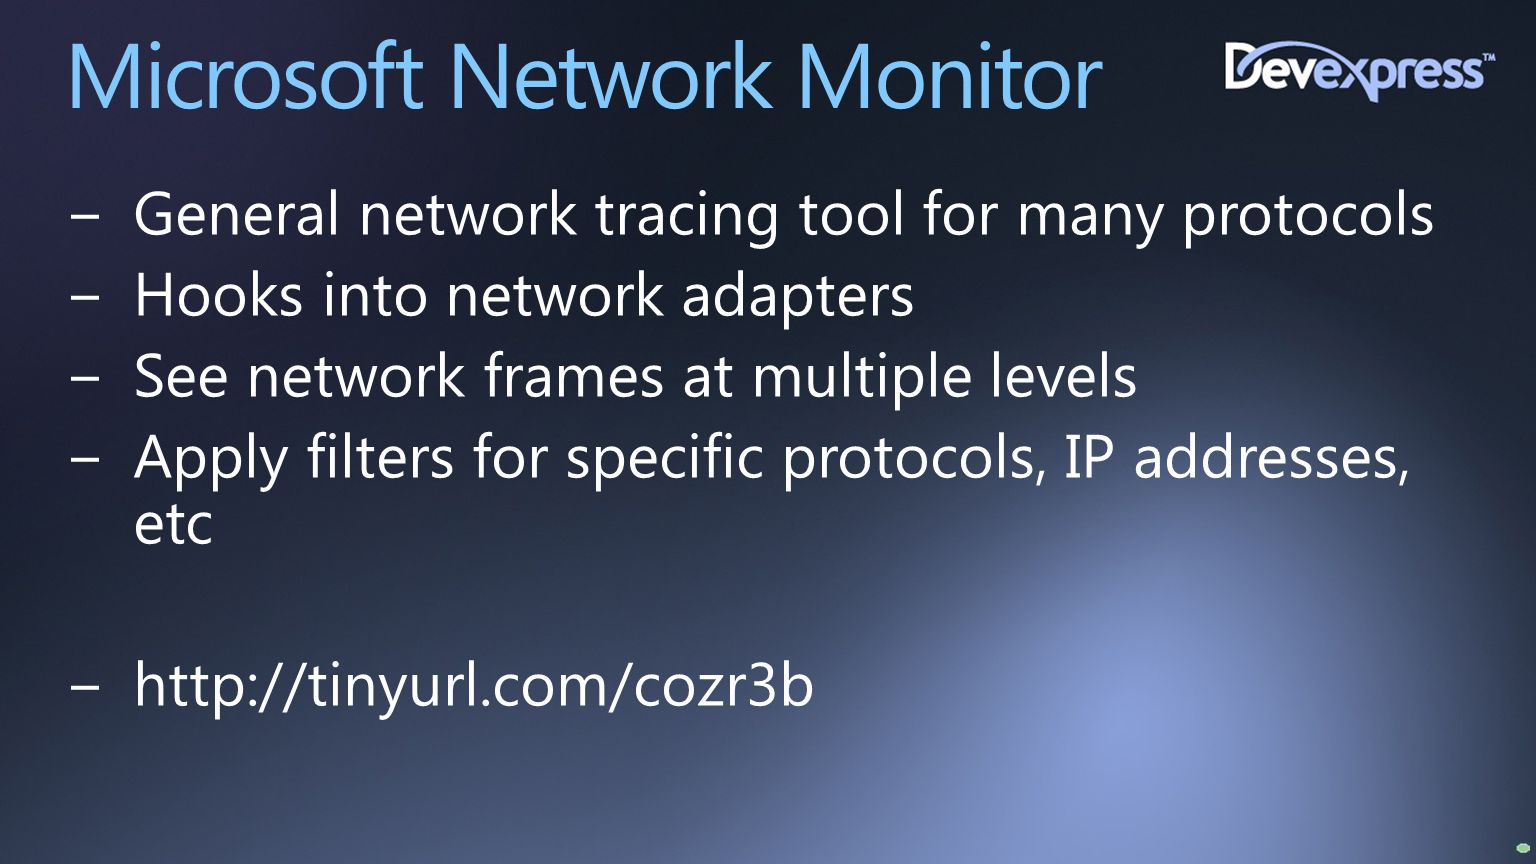 Microsoft Network Monitor −General network tracing tool for many protocols −Hooks into network adapters −See network frames at multiple levels −Apply